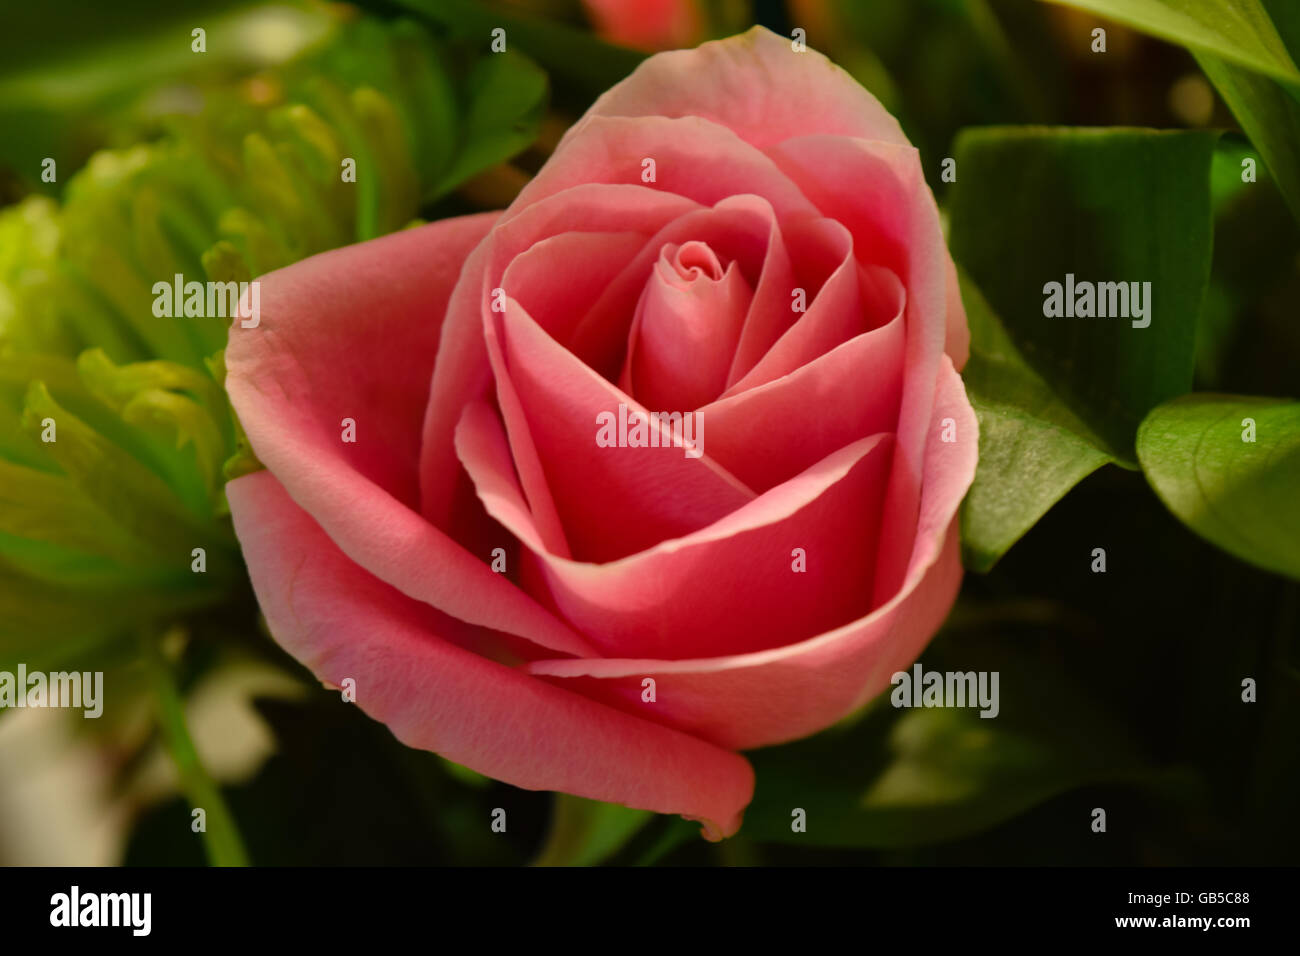 A single red rose. Stock Photo